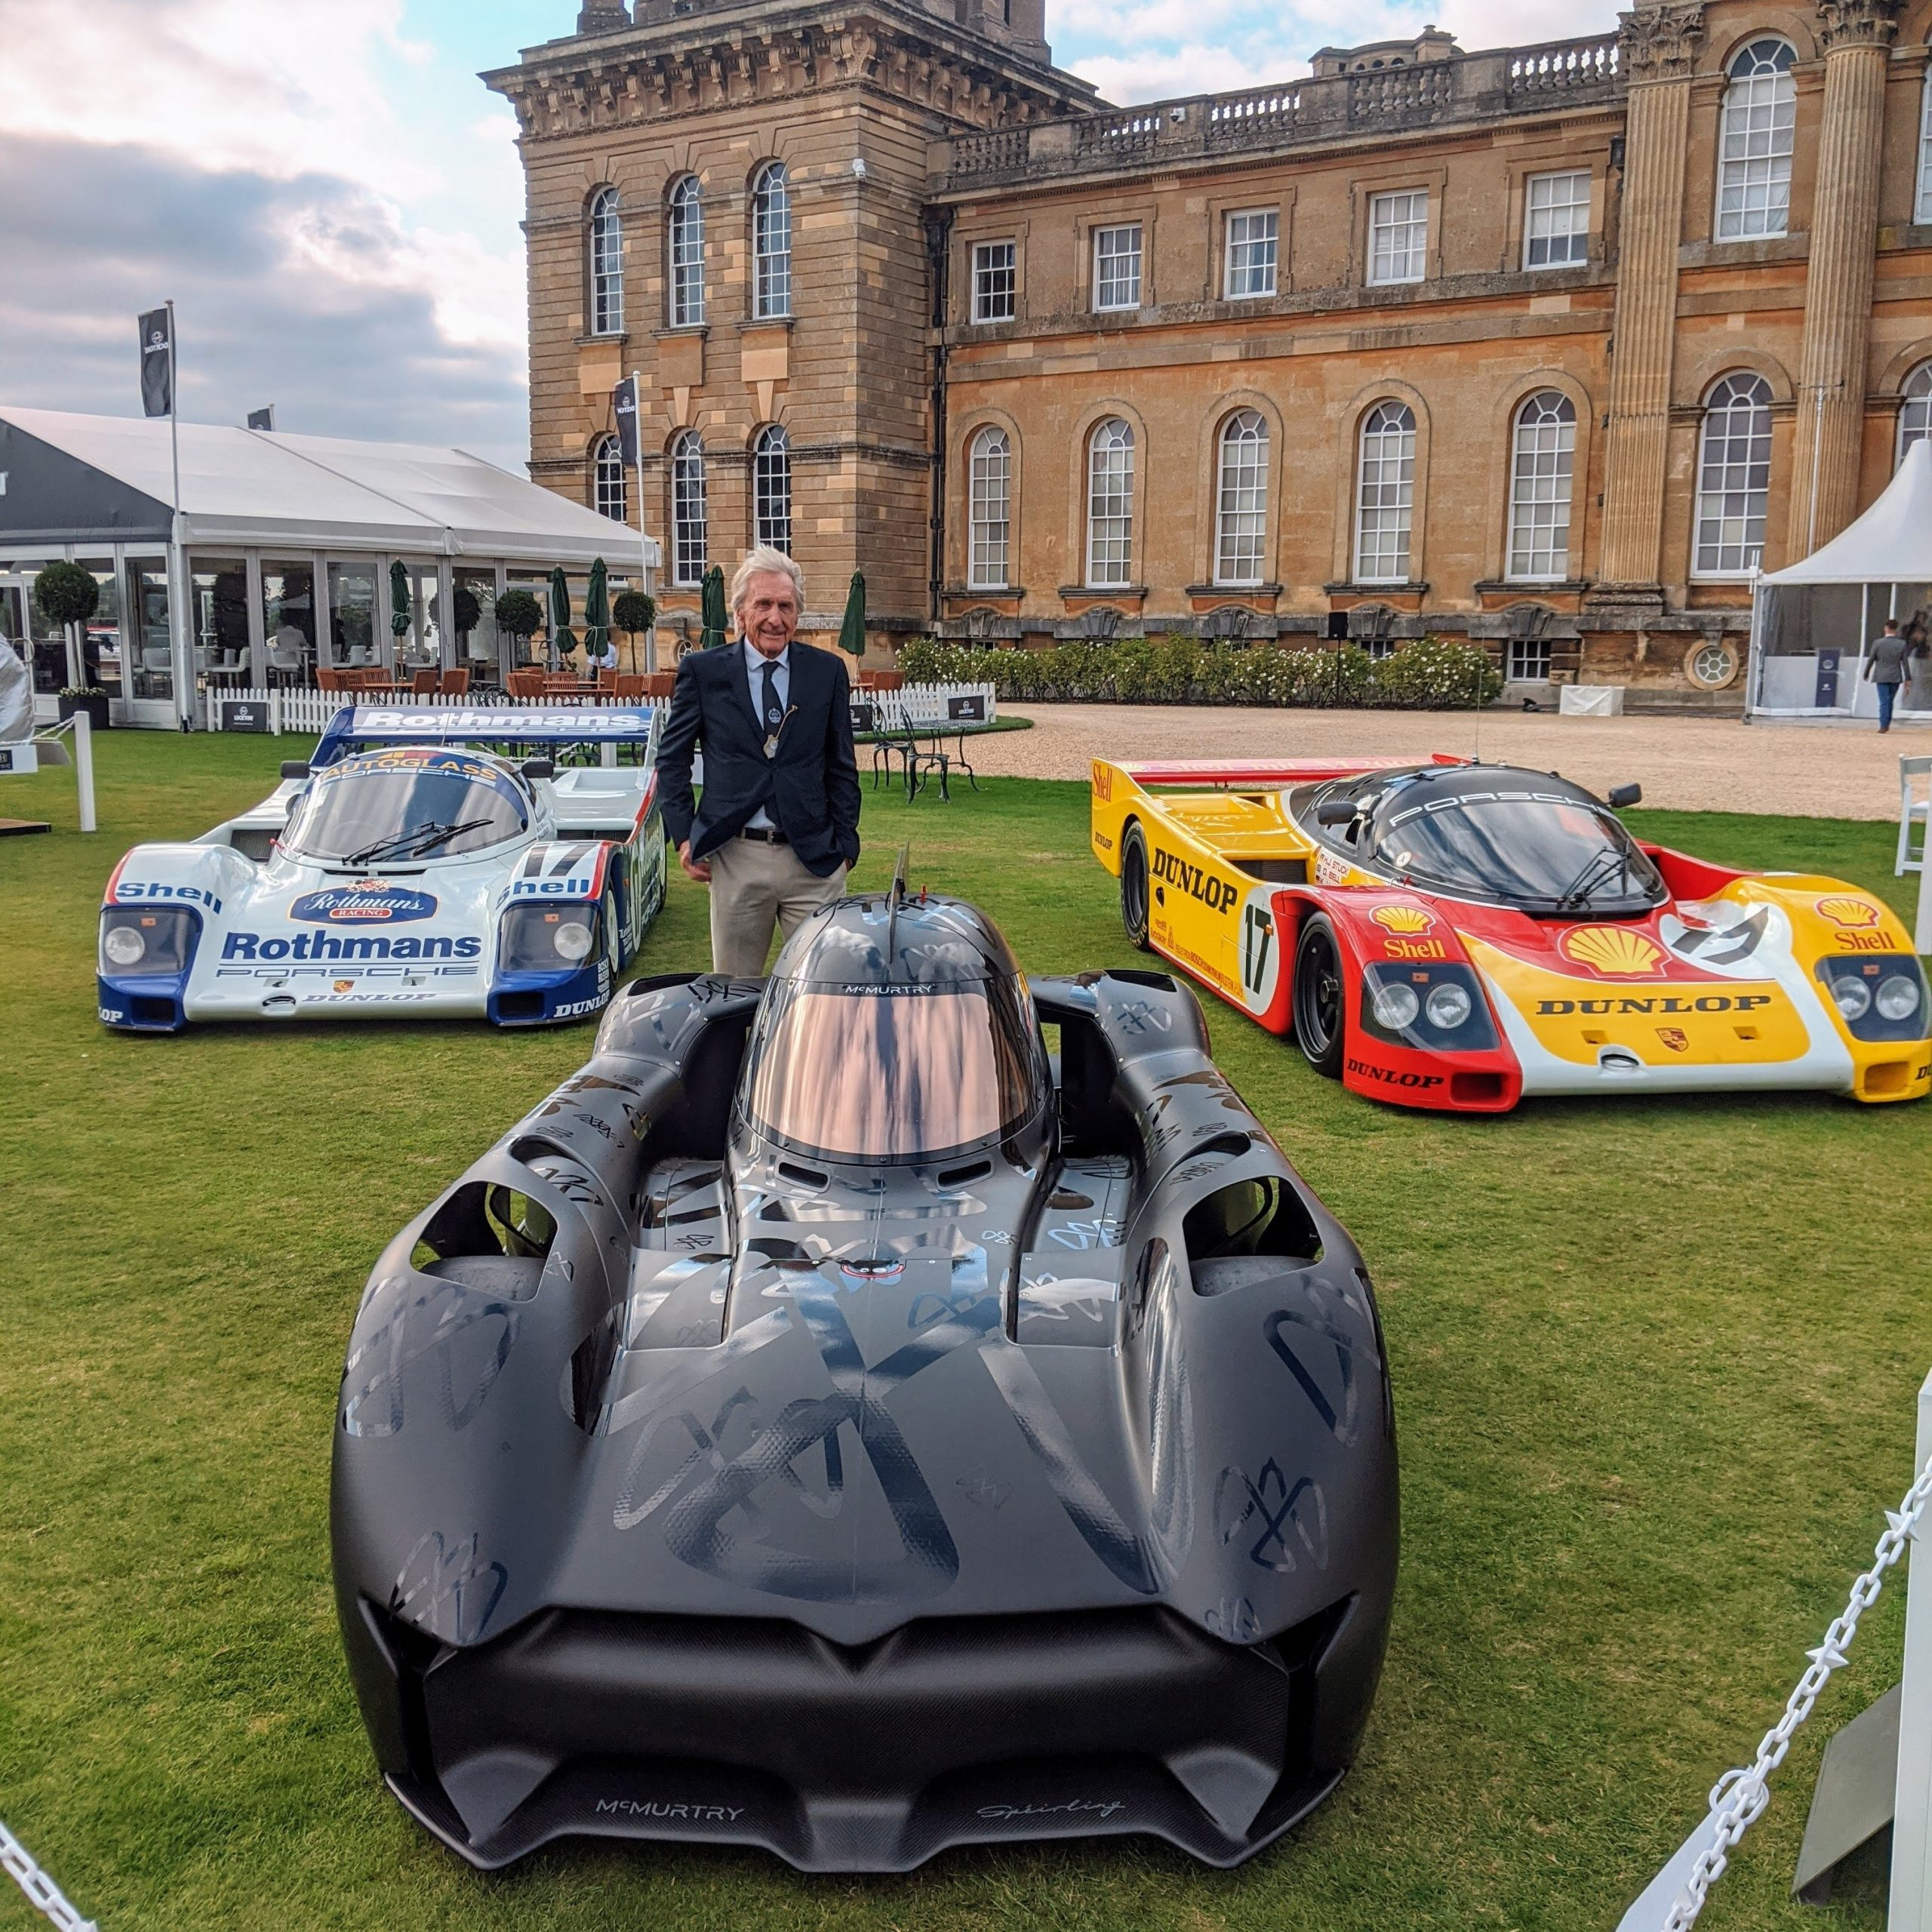 The McMurtry Spéirling in the Derek Bell Collection at Salon Privé